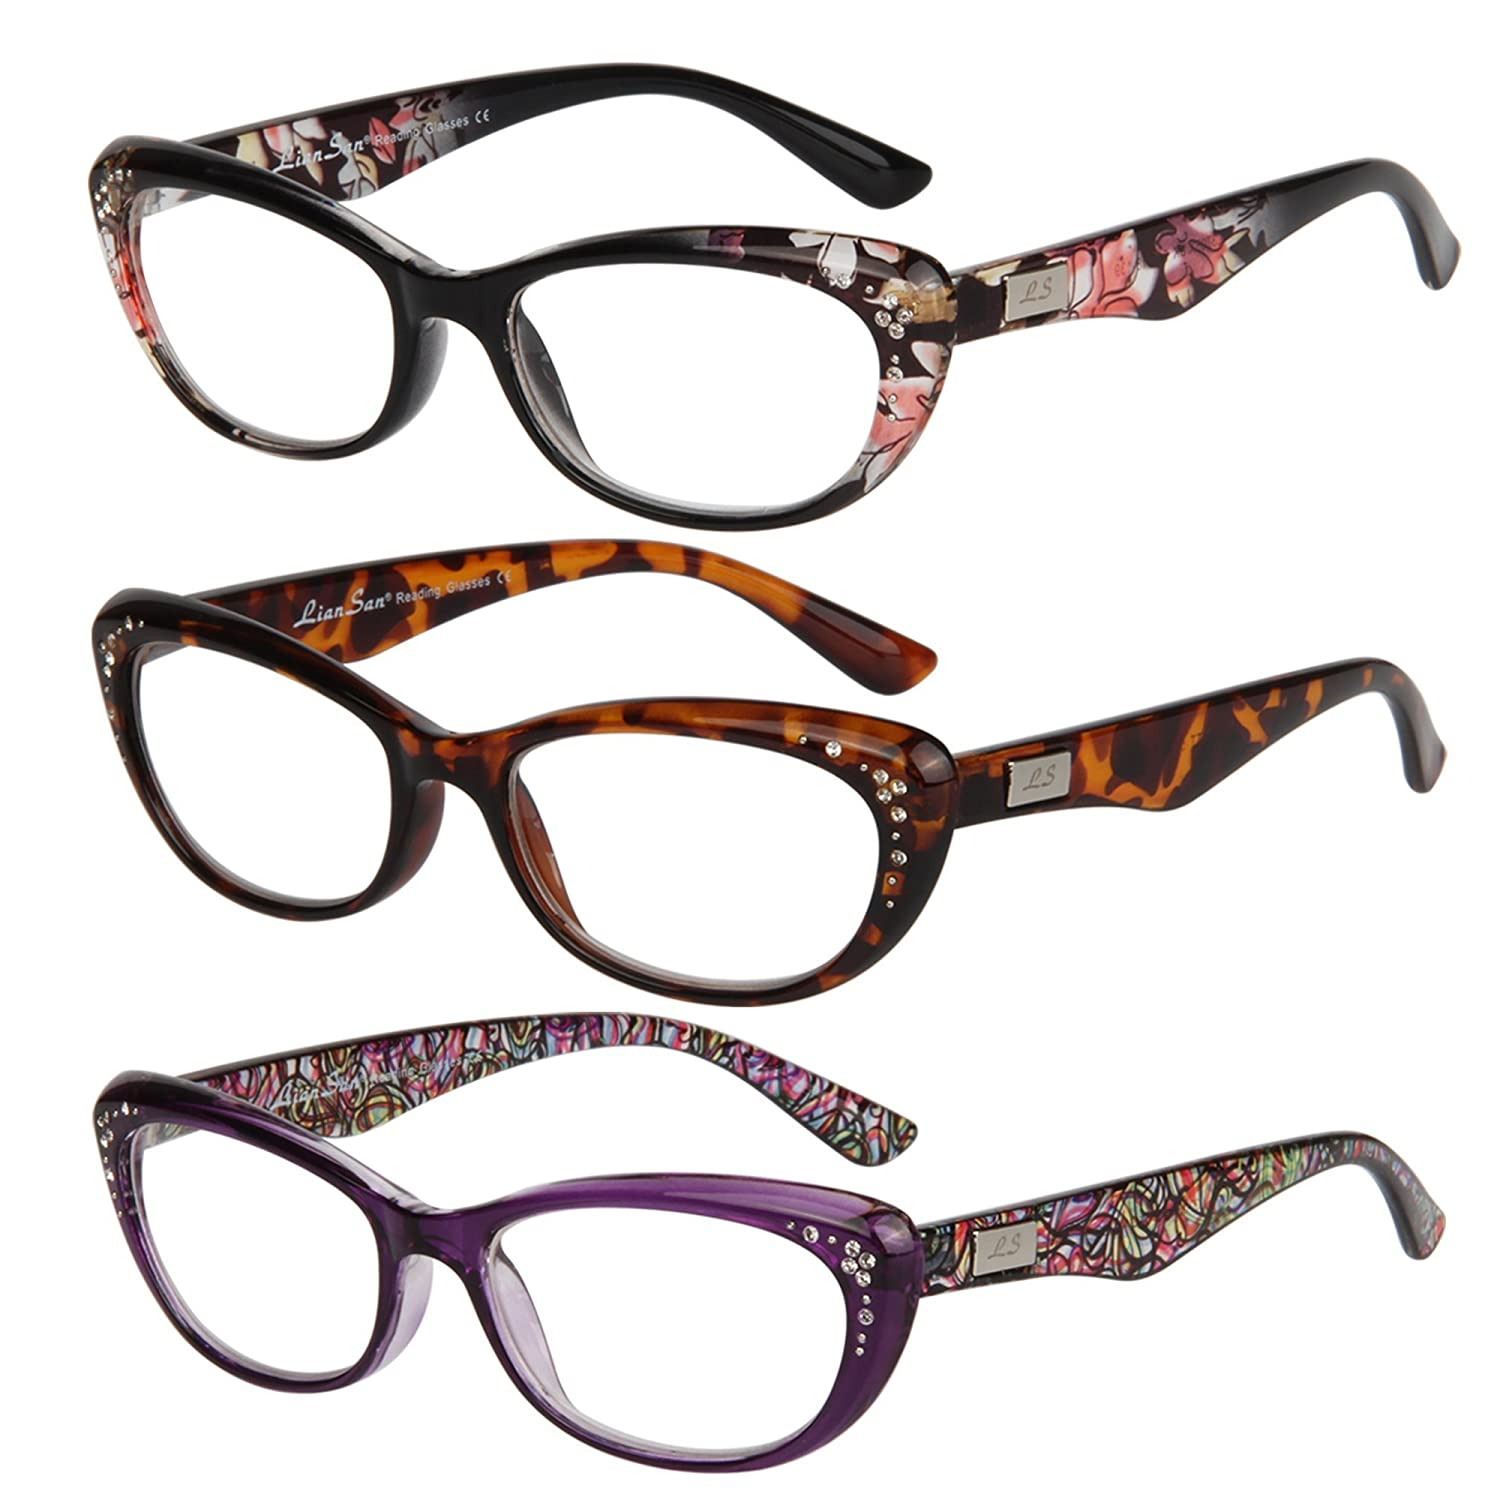 82c3f95df22 Amazon.com  Liansan Women s Designer Wayfarer Compact Cat Eye Retro Fashion Reading  Glasses 1.0 1.25 1 .5 1.75 2 00 2.25 2.50 2.75 3.0 3.25 3.5 4.0 ...